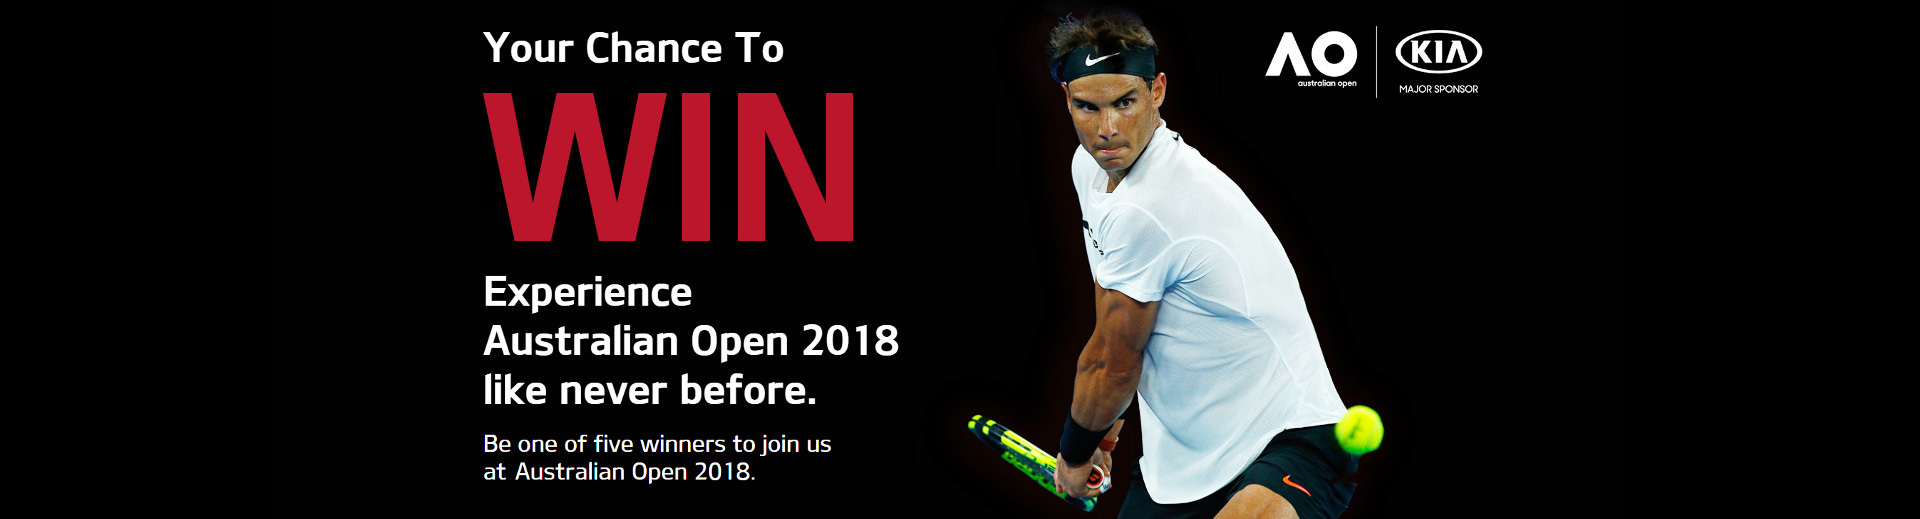 Kia - National Offer - Your chance to win an Australian Open 2018 Experience